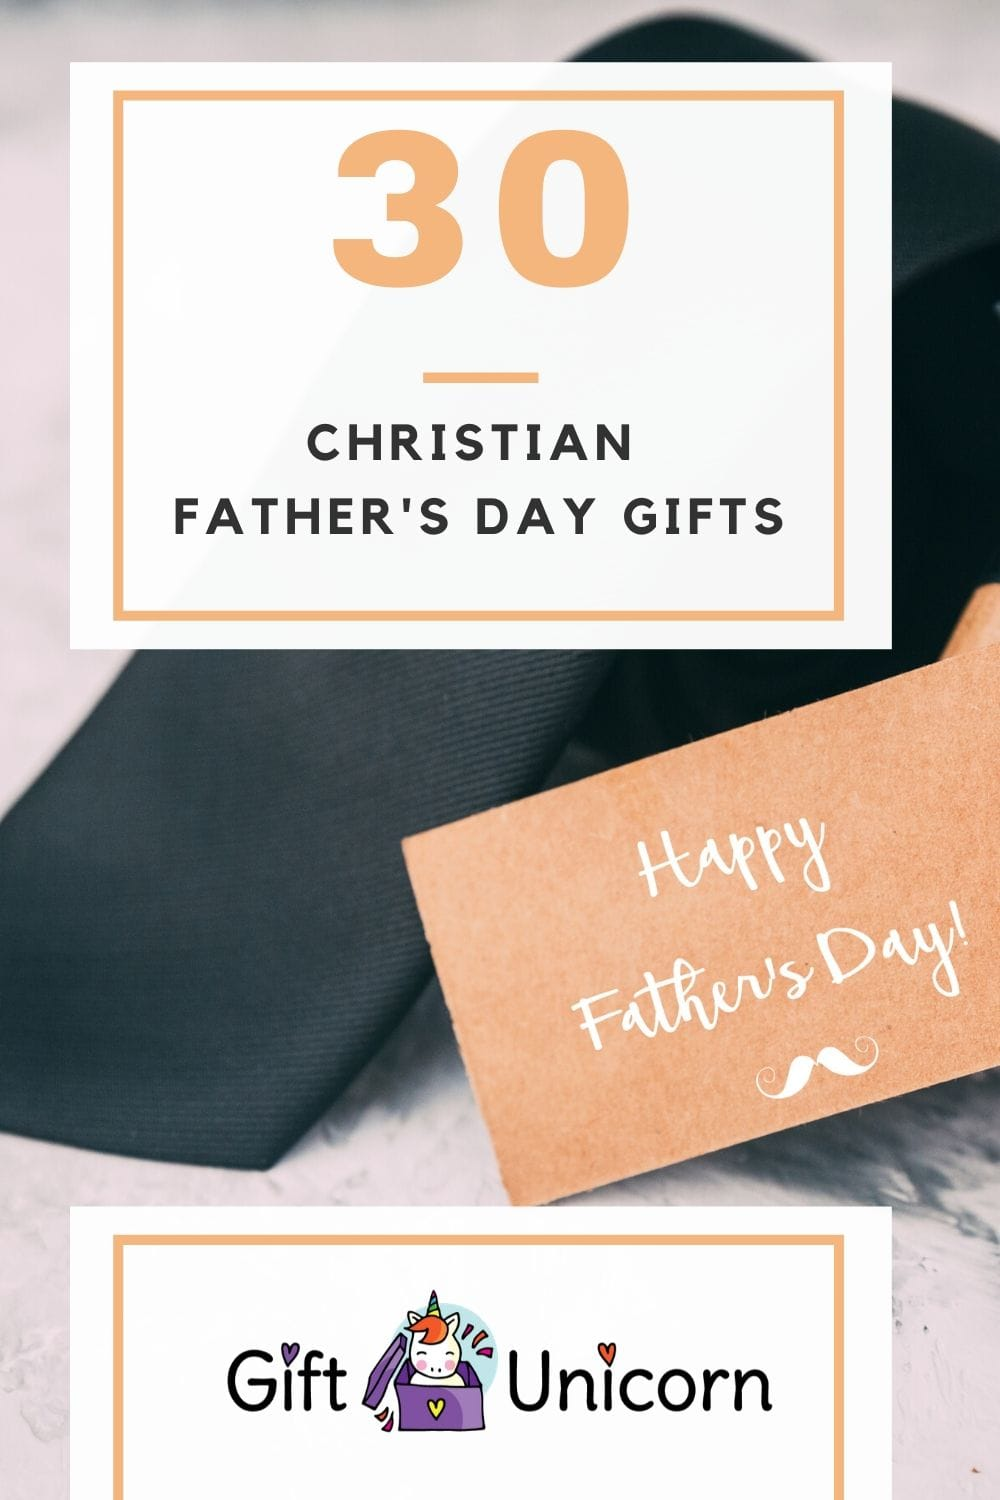 30 christian father's day gifts pin image